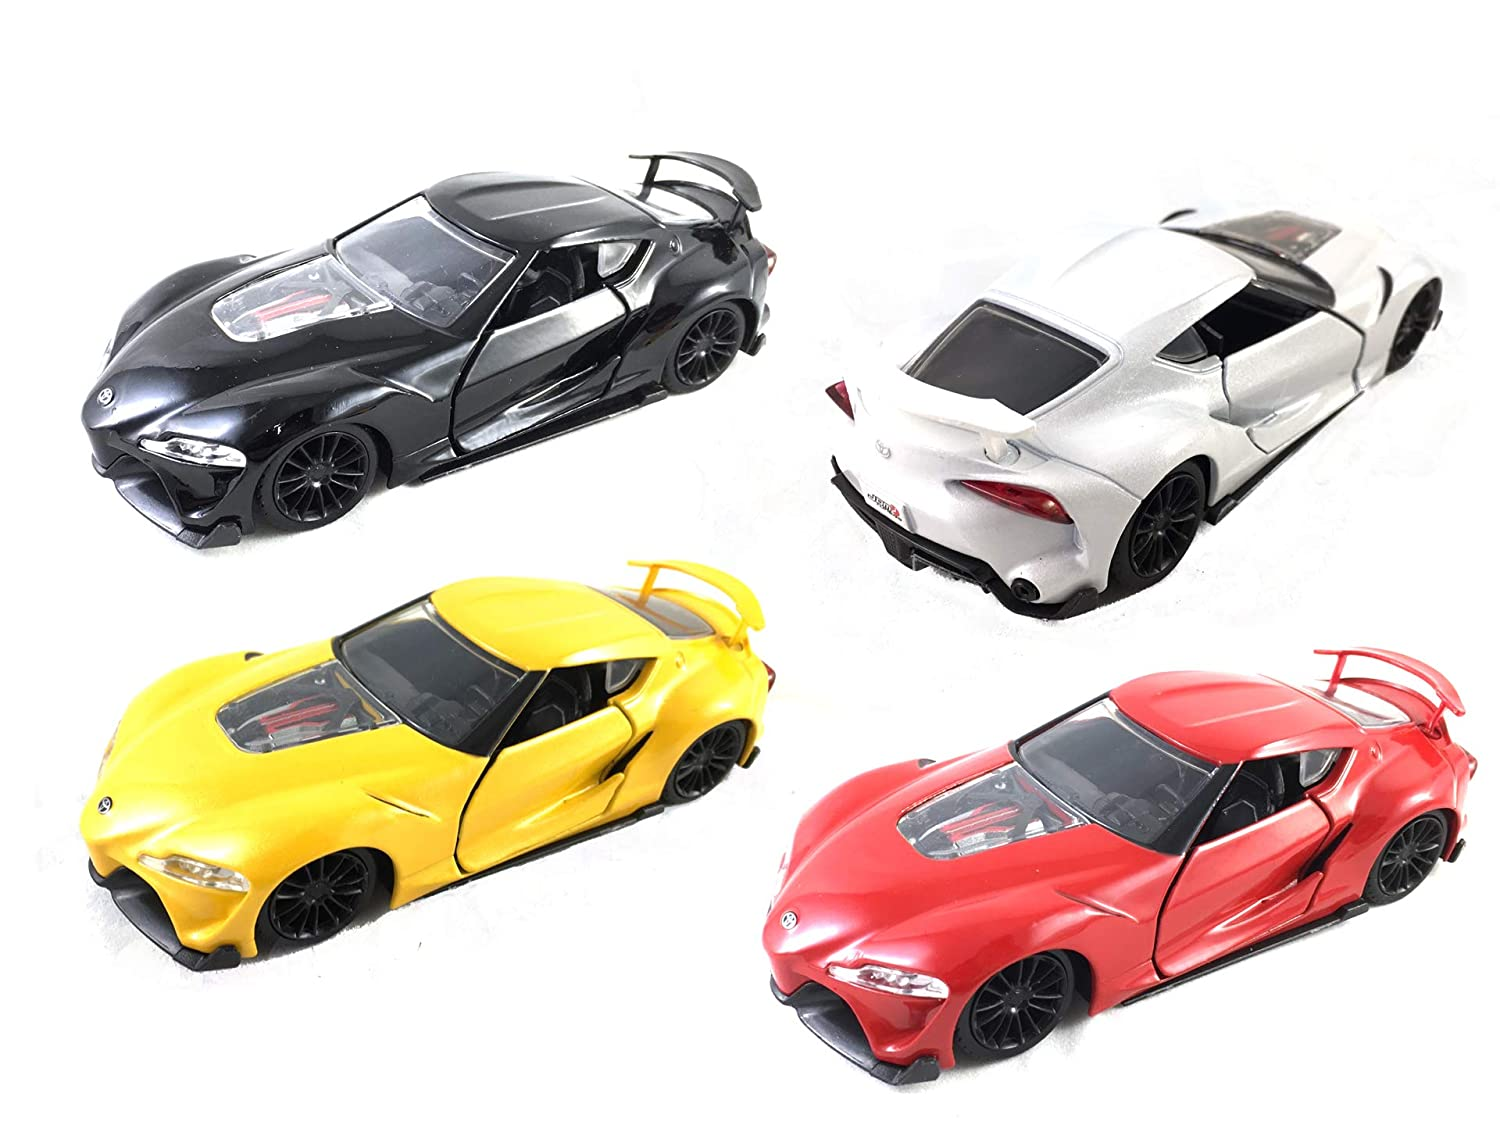 HCK Set of 4 Toyota FT-1 Supra Concept Pull Back Toy Cars 1:32 Scale Black//Yellow//White//Red